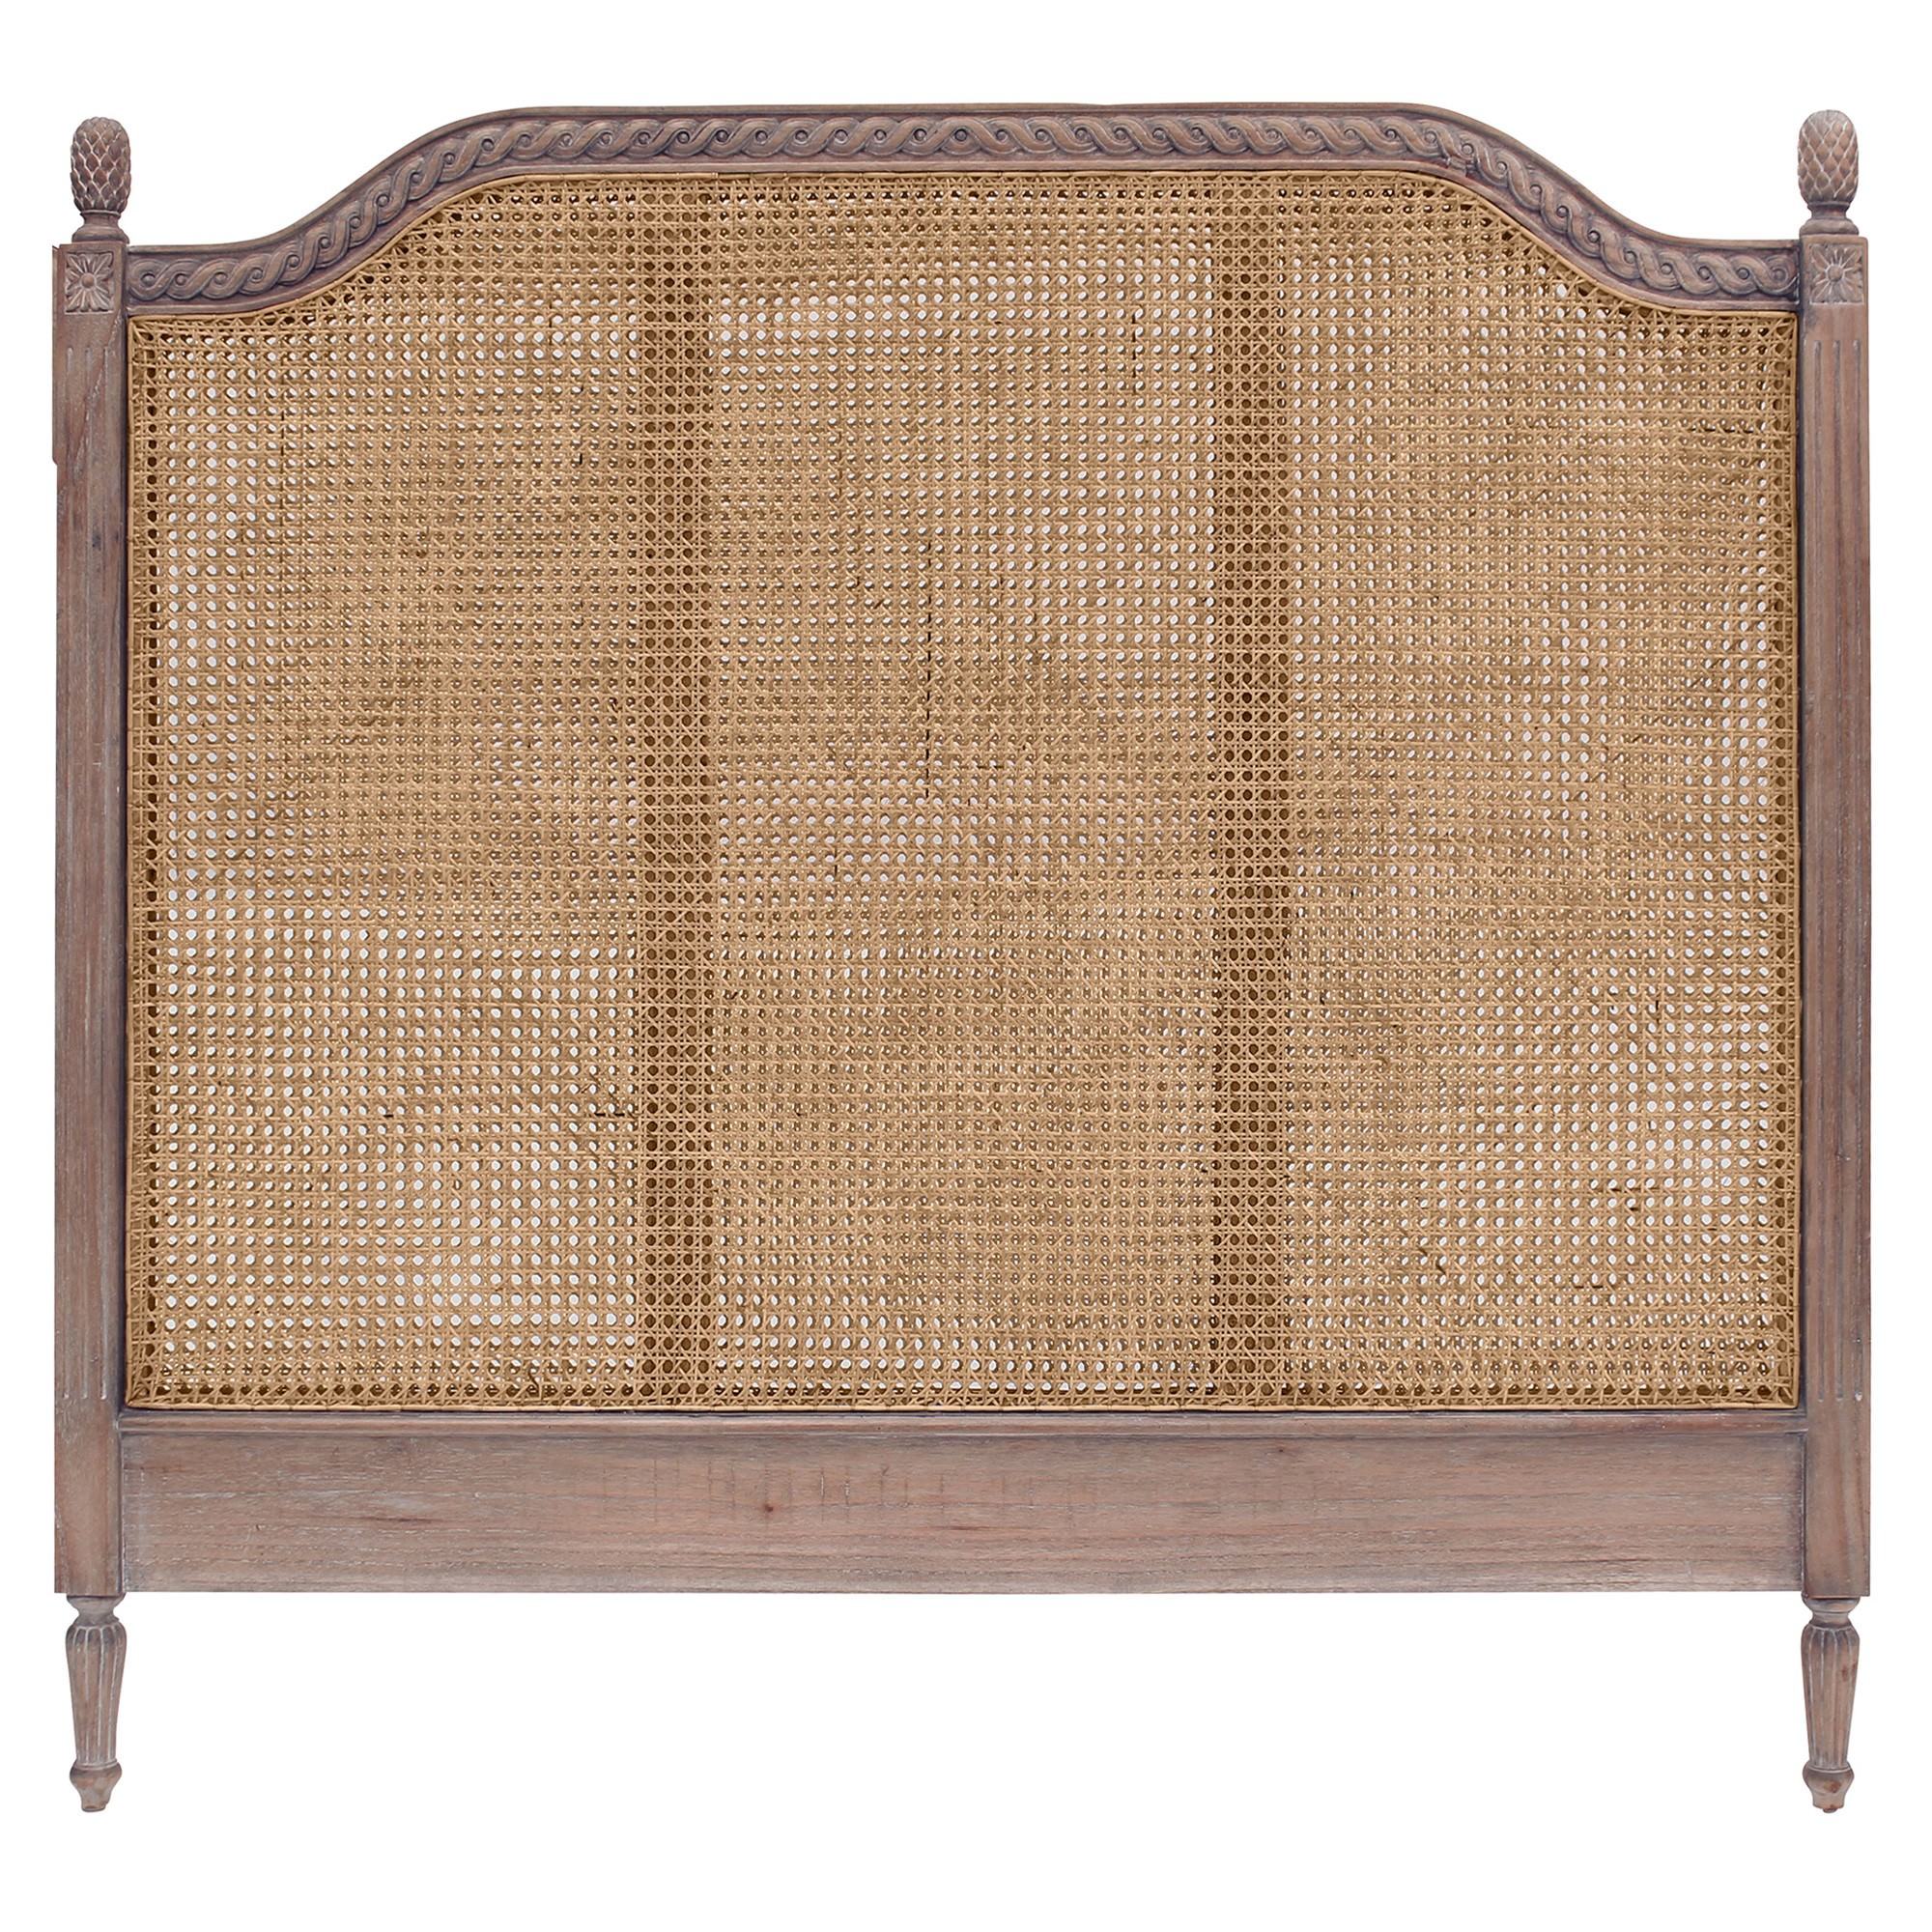 Lapalisse Hand Crafted Mahogany Timber & Rattan Bed Headboard, King, Weathered Oak